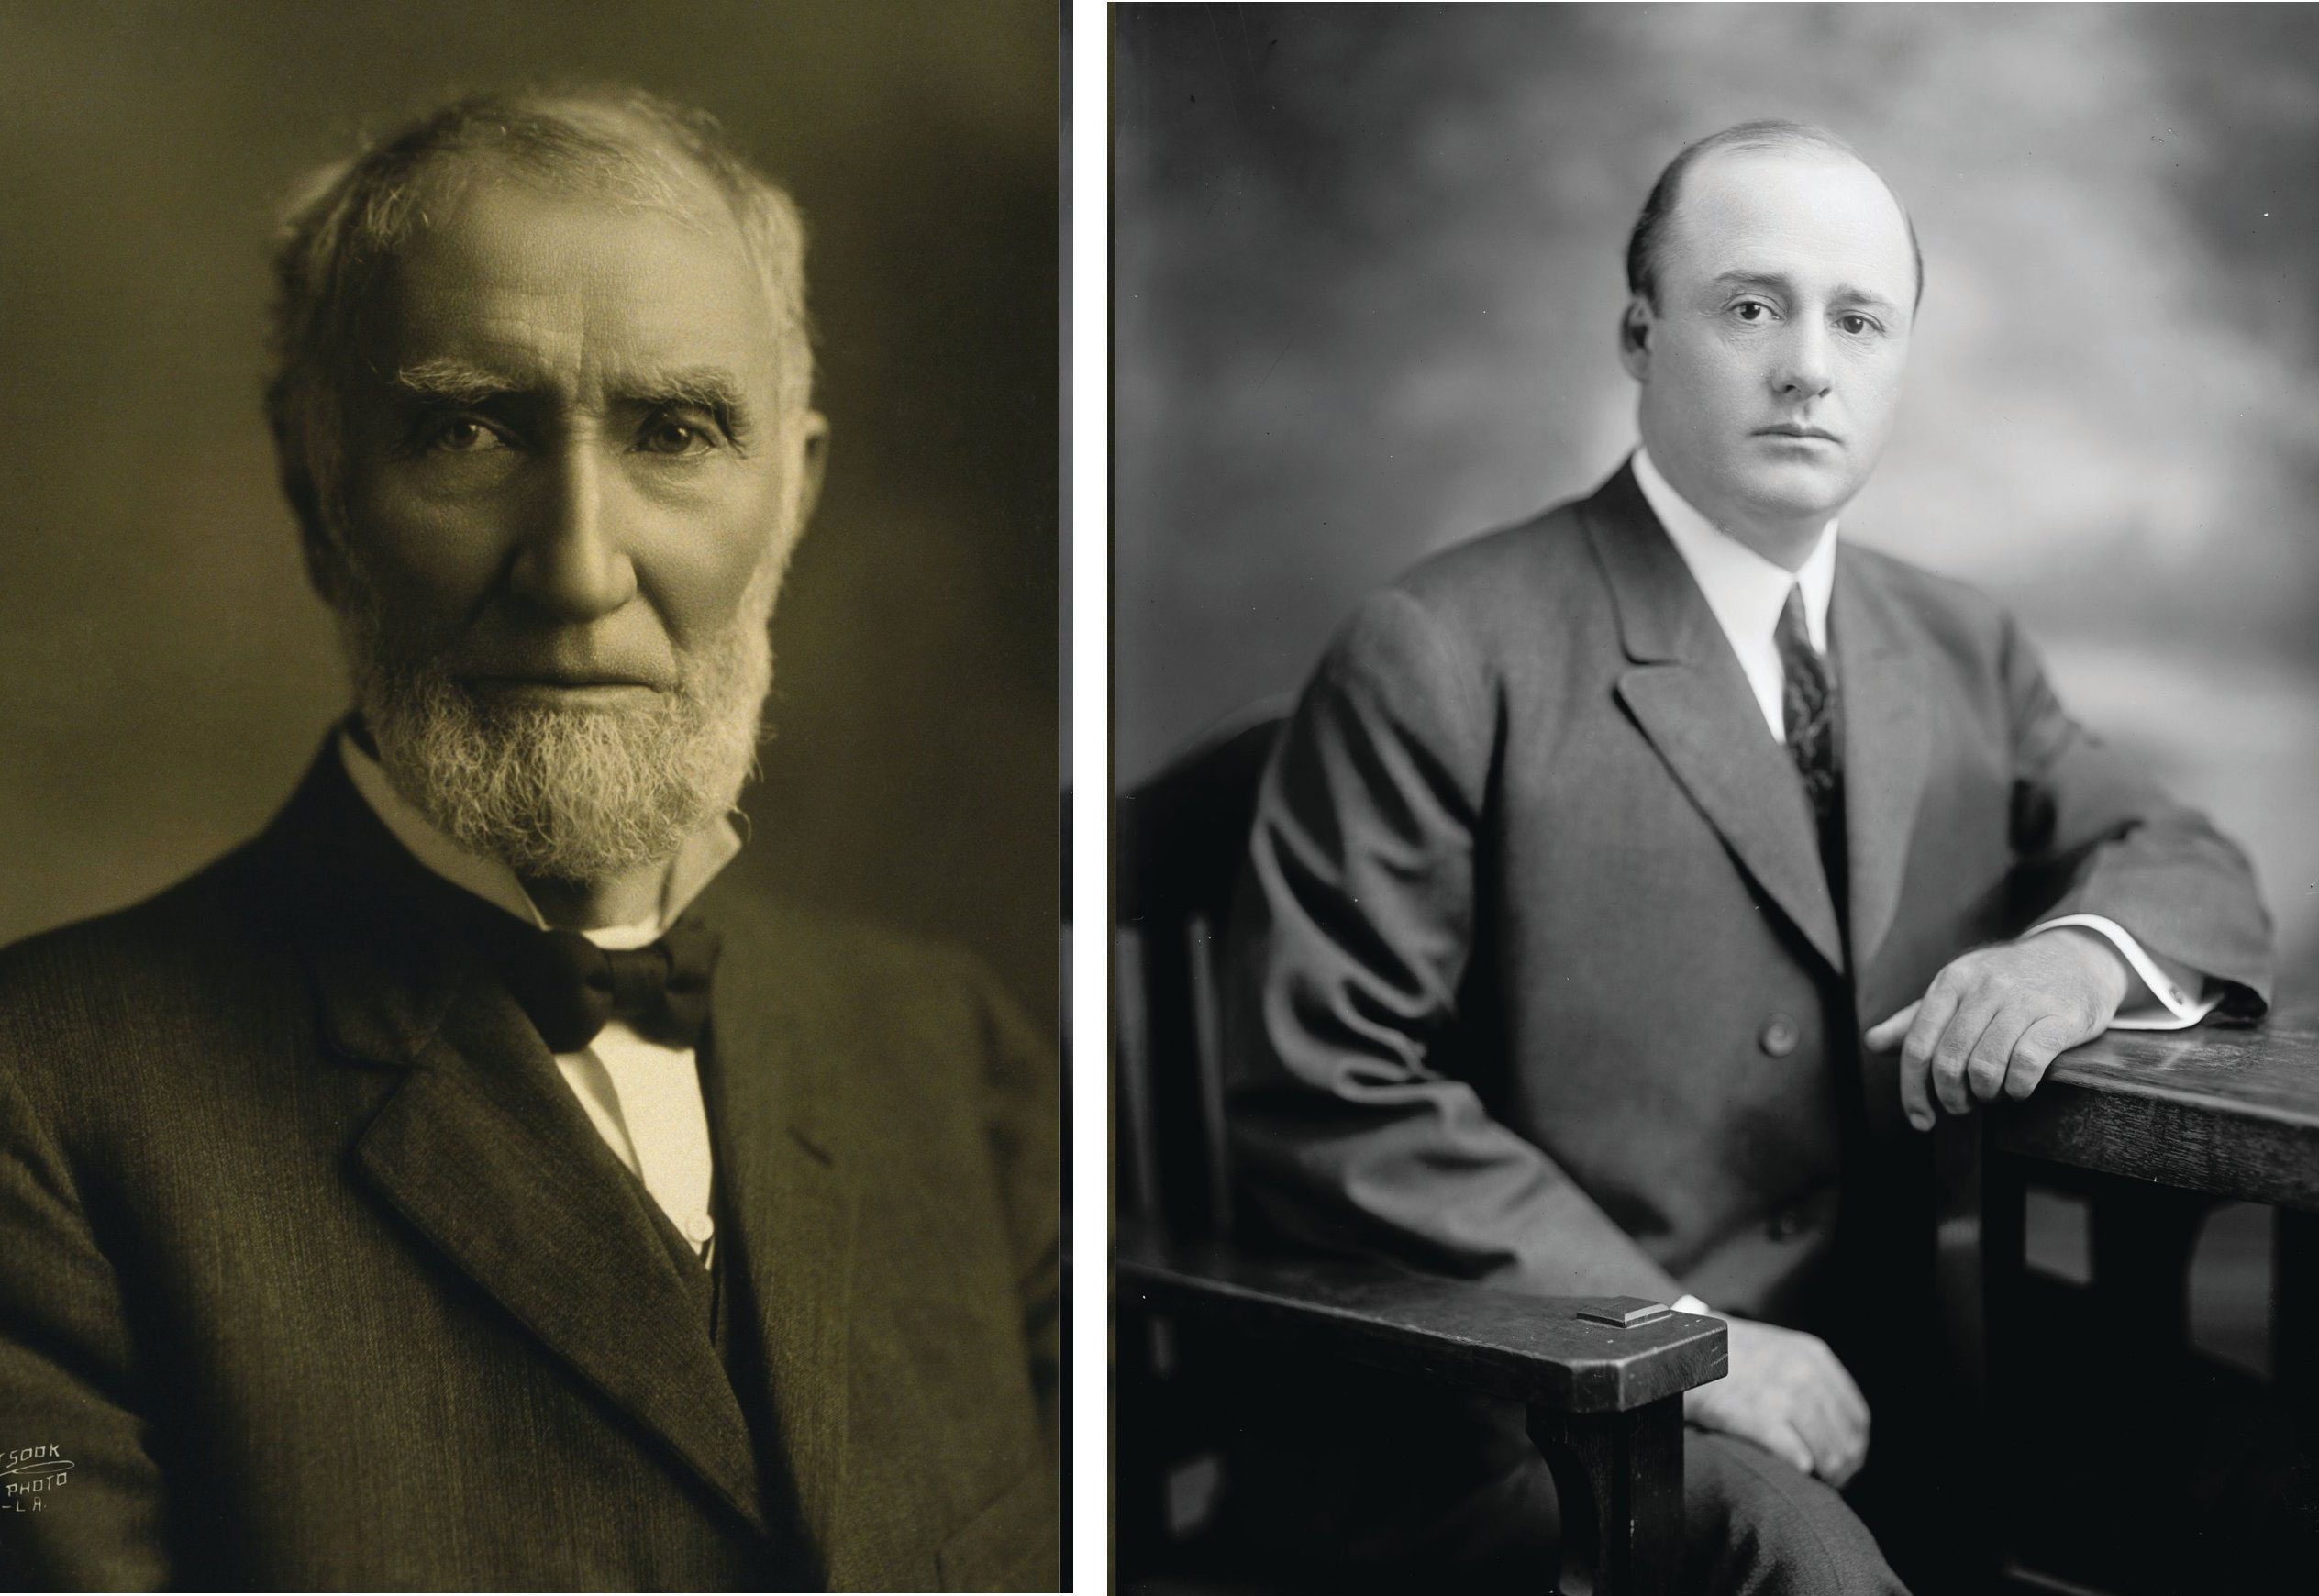 Left: photo of Joe Cannon. Right: photo of Sam Rayburn